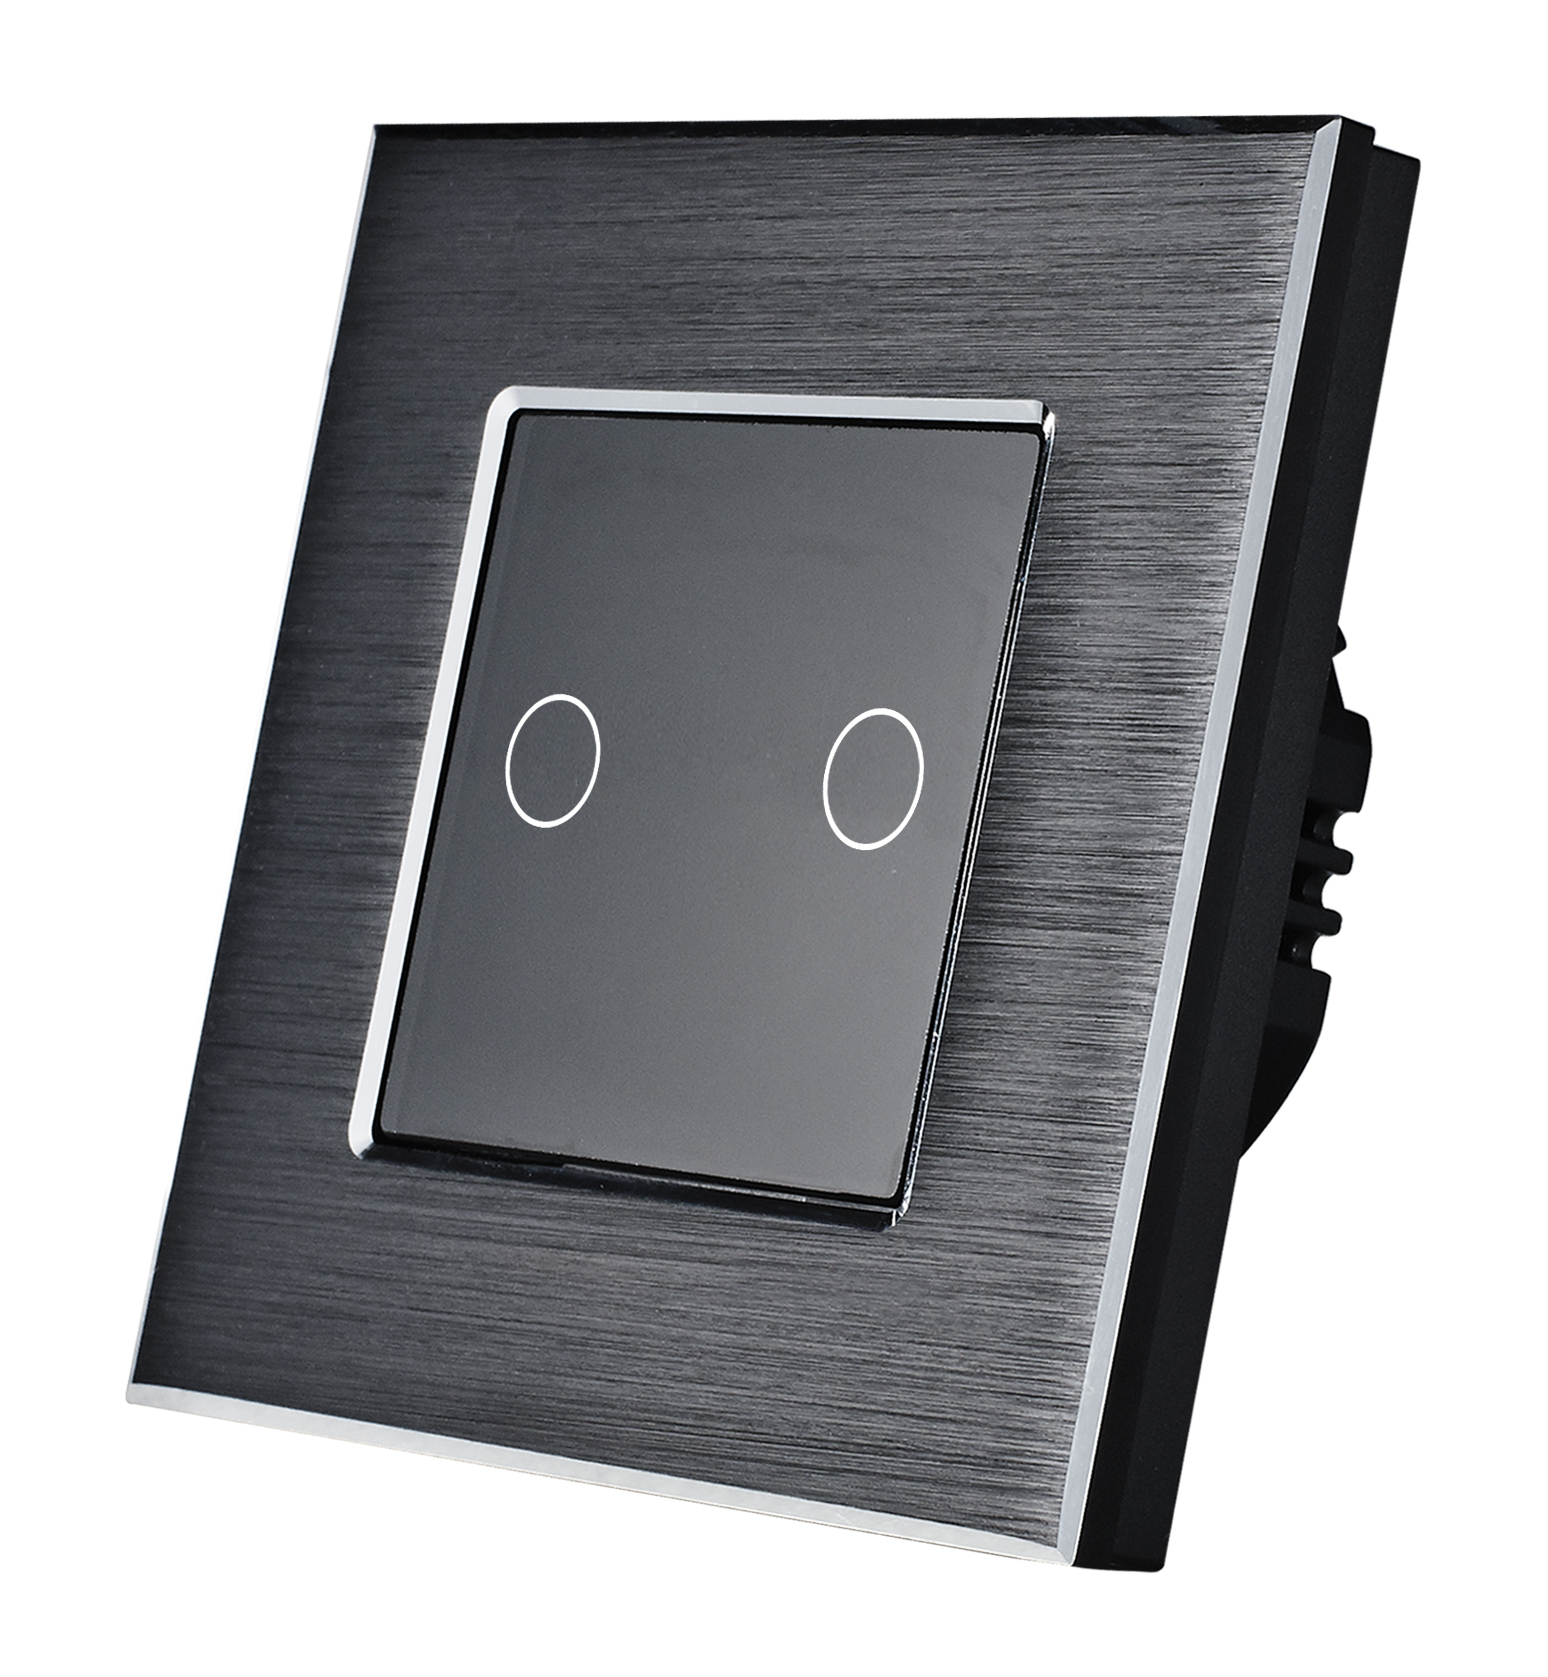 New UK/EU standard aluminum and small glass panel 2gang 1way dimmer touch button 700W switch